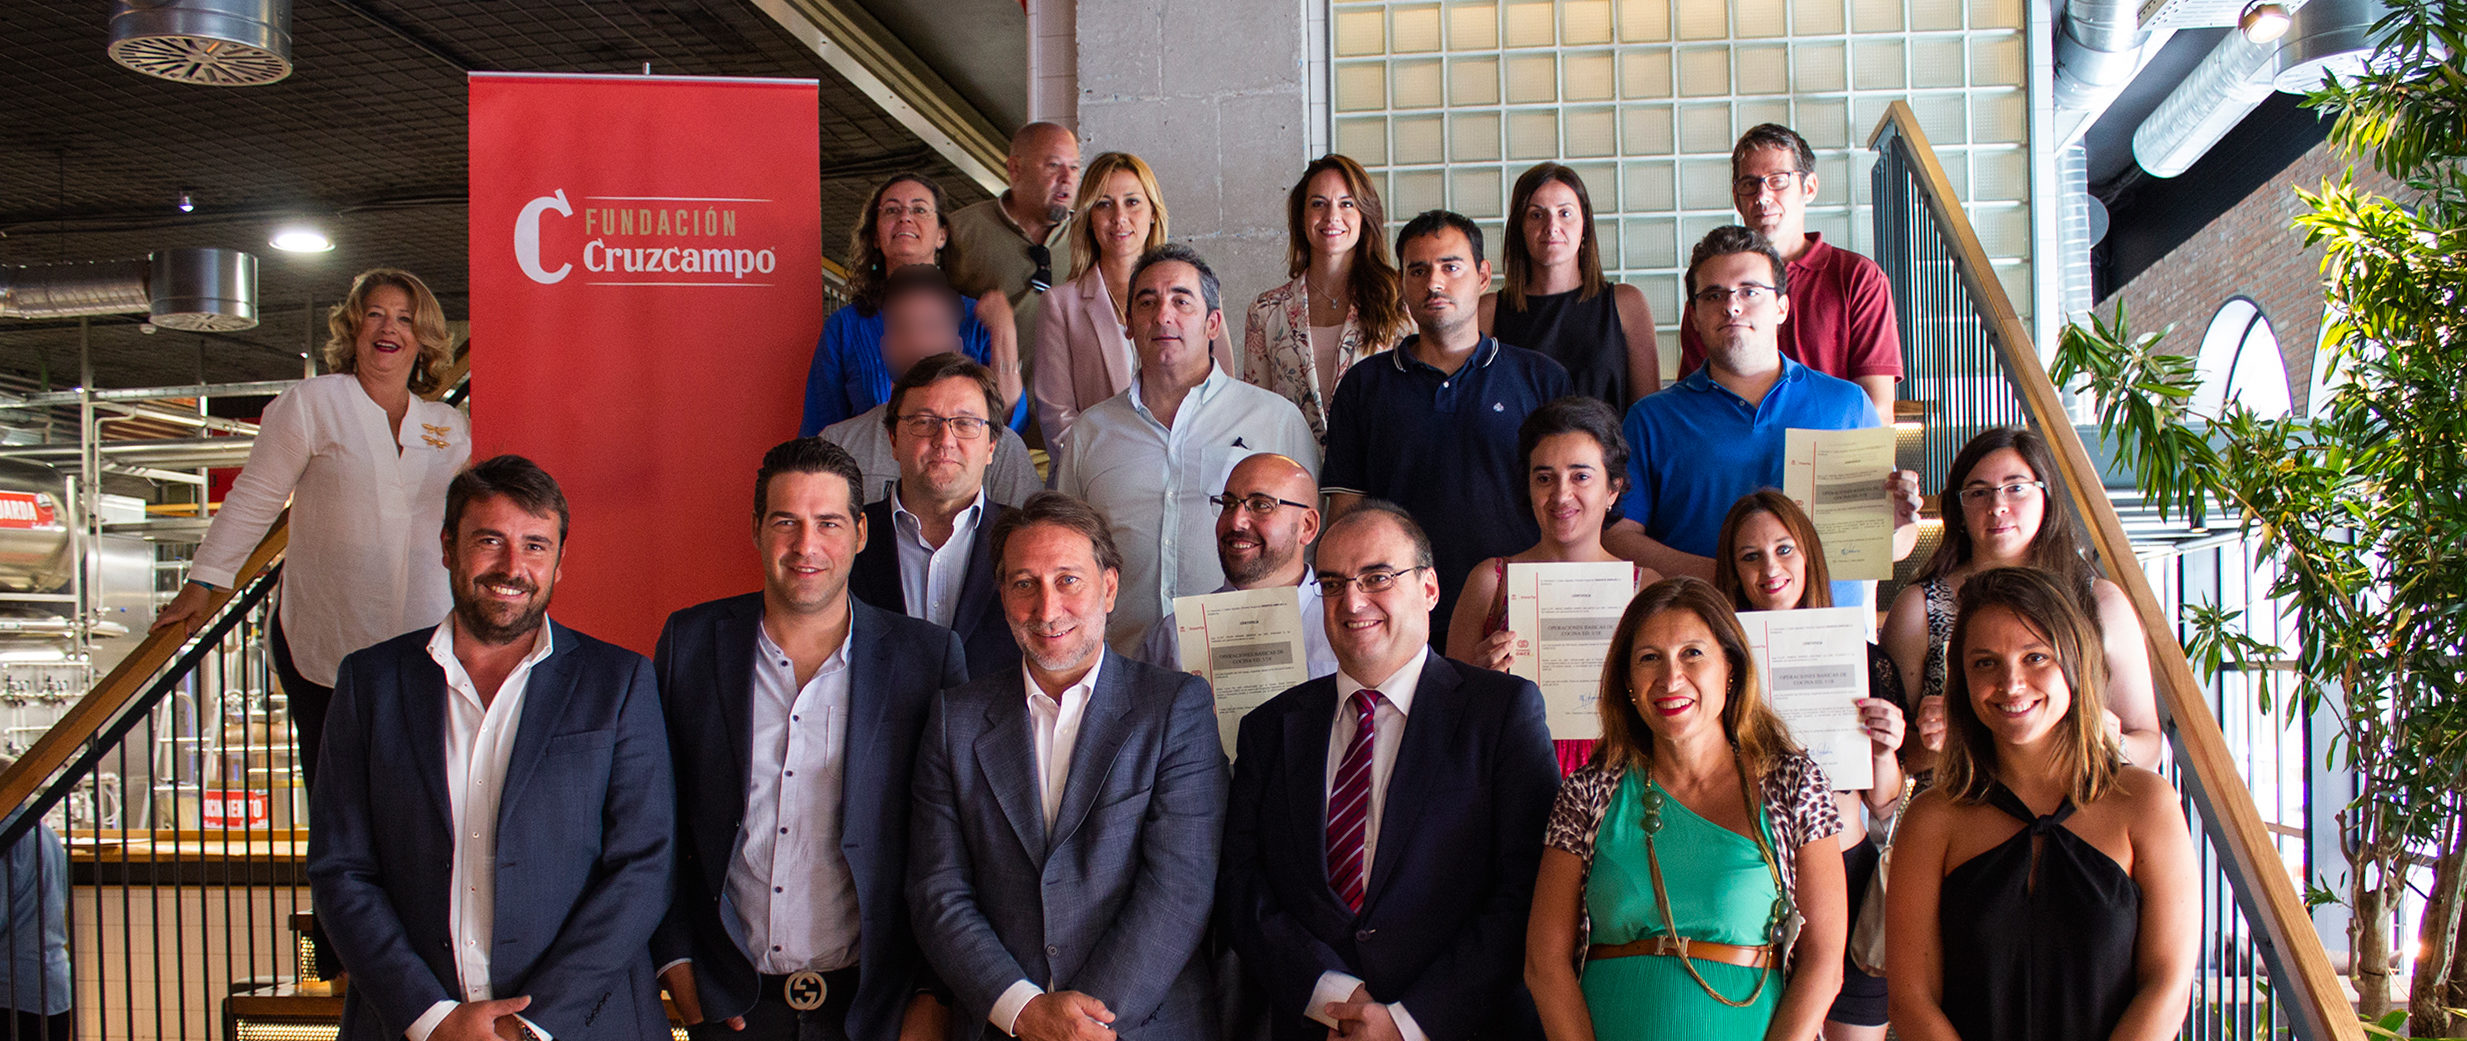 Fundacion Cruzcampo and Fundacion ONCE Collaborate On a Cooking Course at La Fábrica Microbrewery's Malaga Restaurant